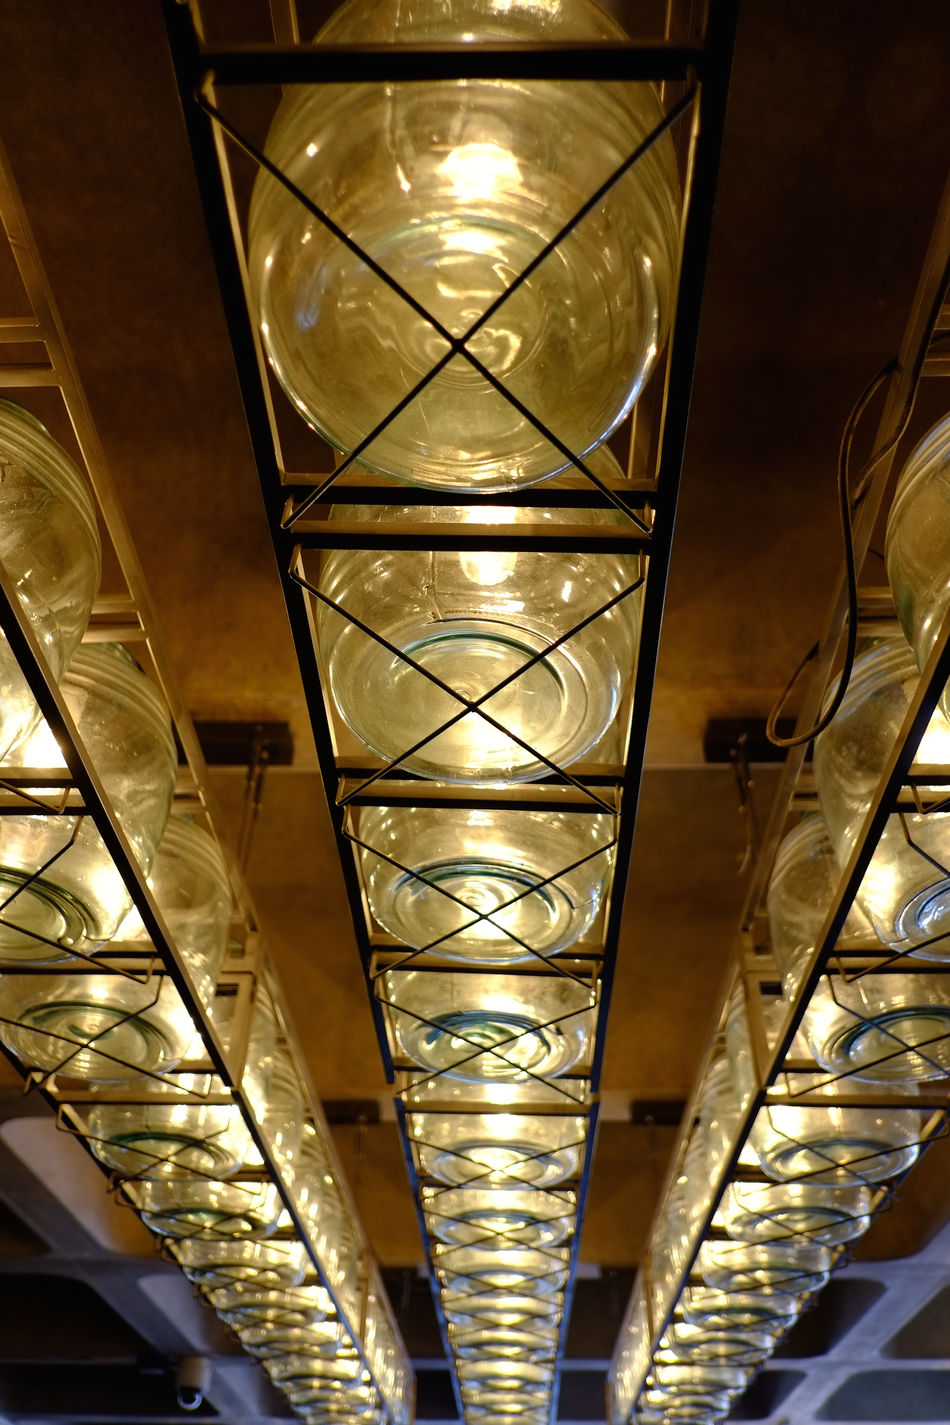 Design elements at modern-style bar/cafe/restaurant Architecture Built Structure Ceiling Close-up Glass - Material Illuminated Indoors  Industrial Style Interior Design Lighting Equipment Low Angle View Modern Architecture Night No People